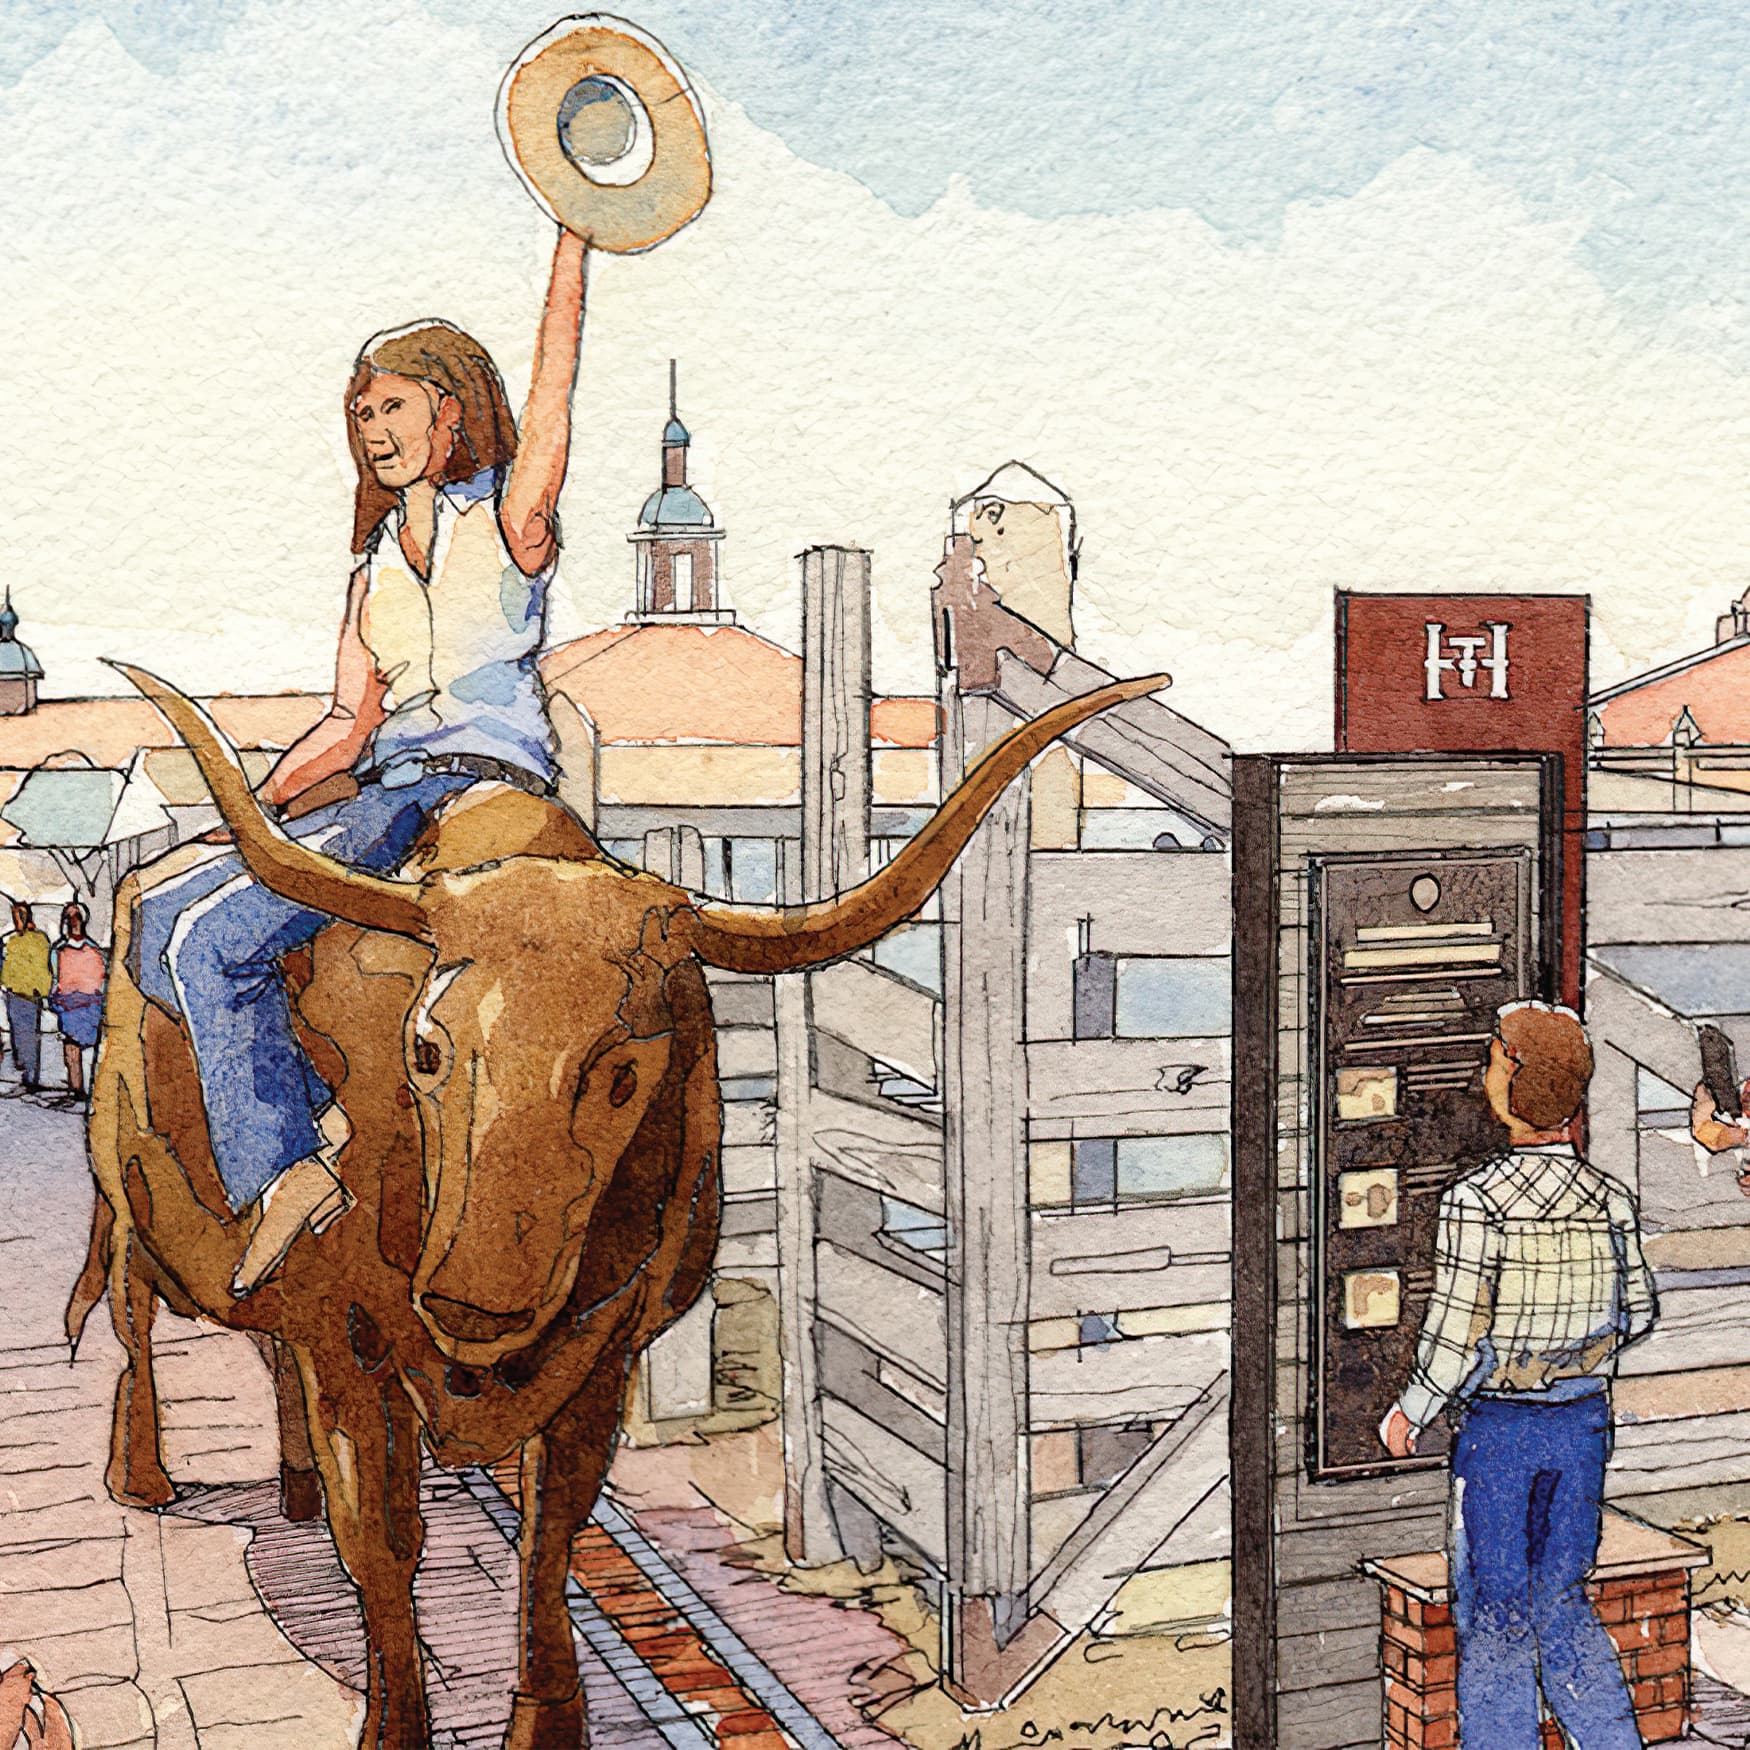 Illustration of woman posing on long-horn bull and child reading a project directory